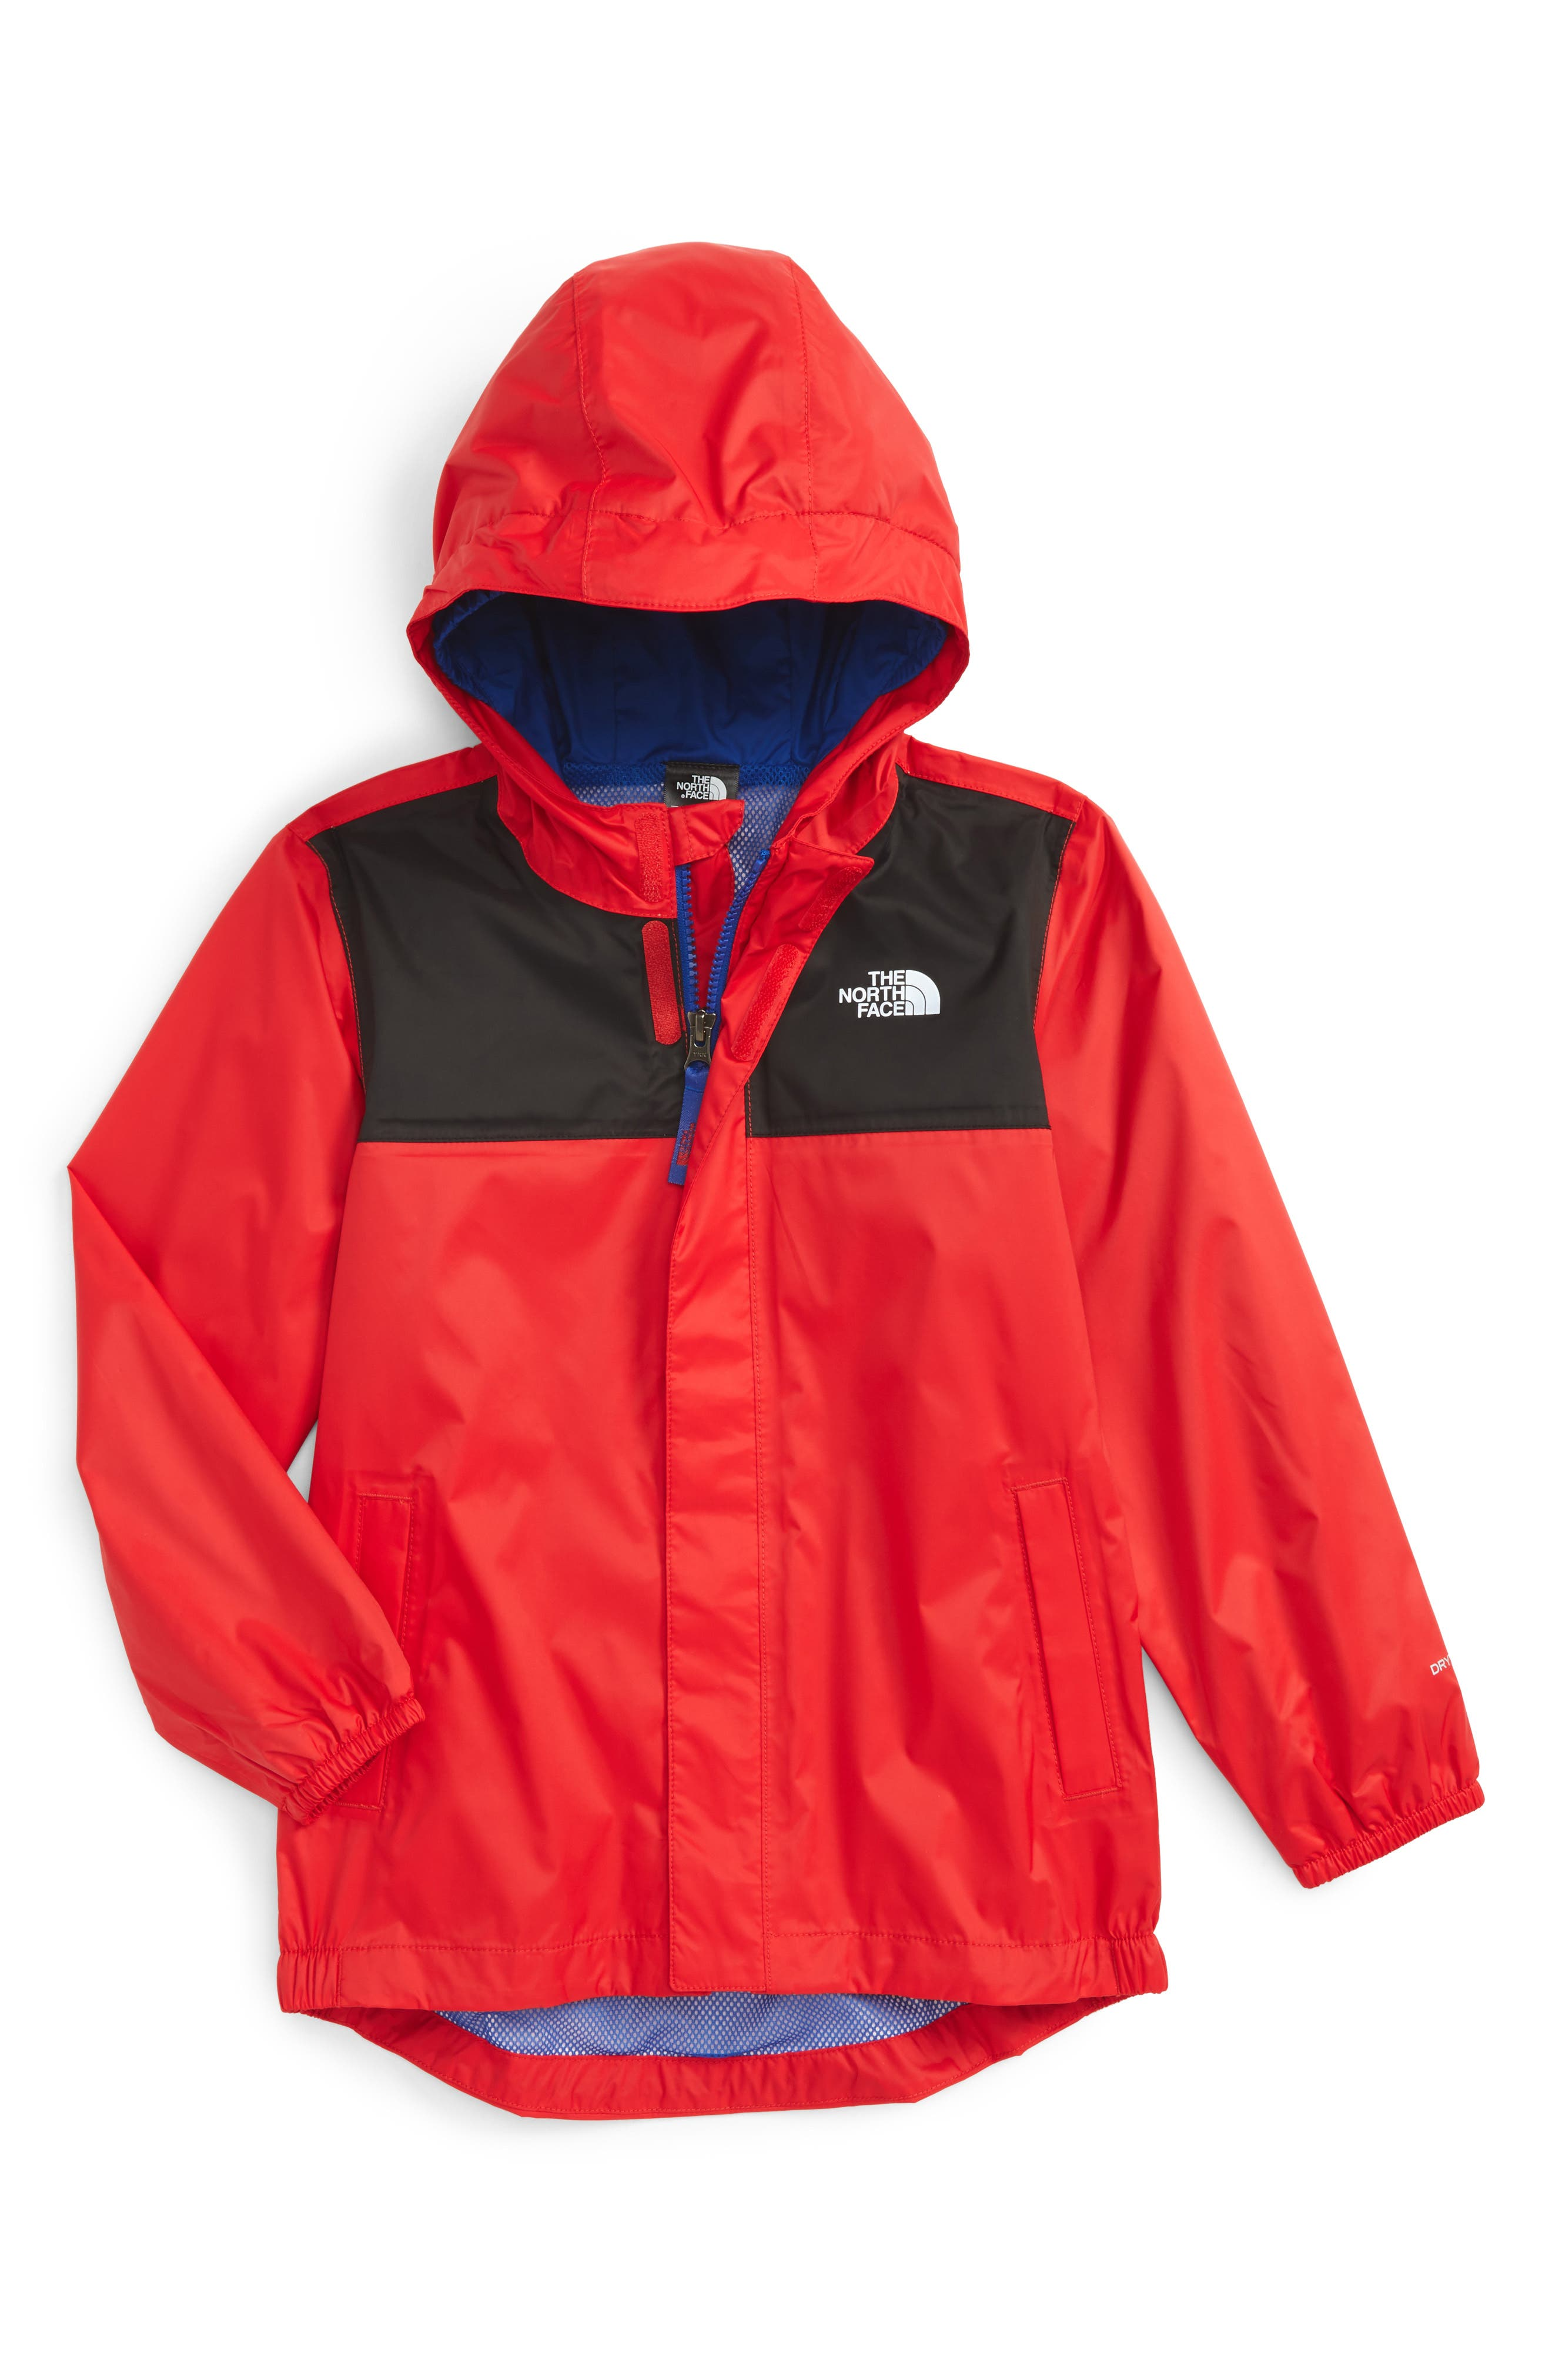 The North Face Tailout Waterproof/Windproof Hooded Rain Jacket (Toddler Boys & Little Boys)